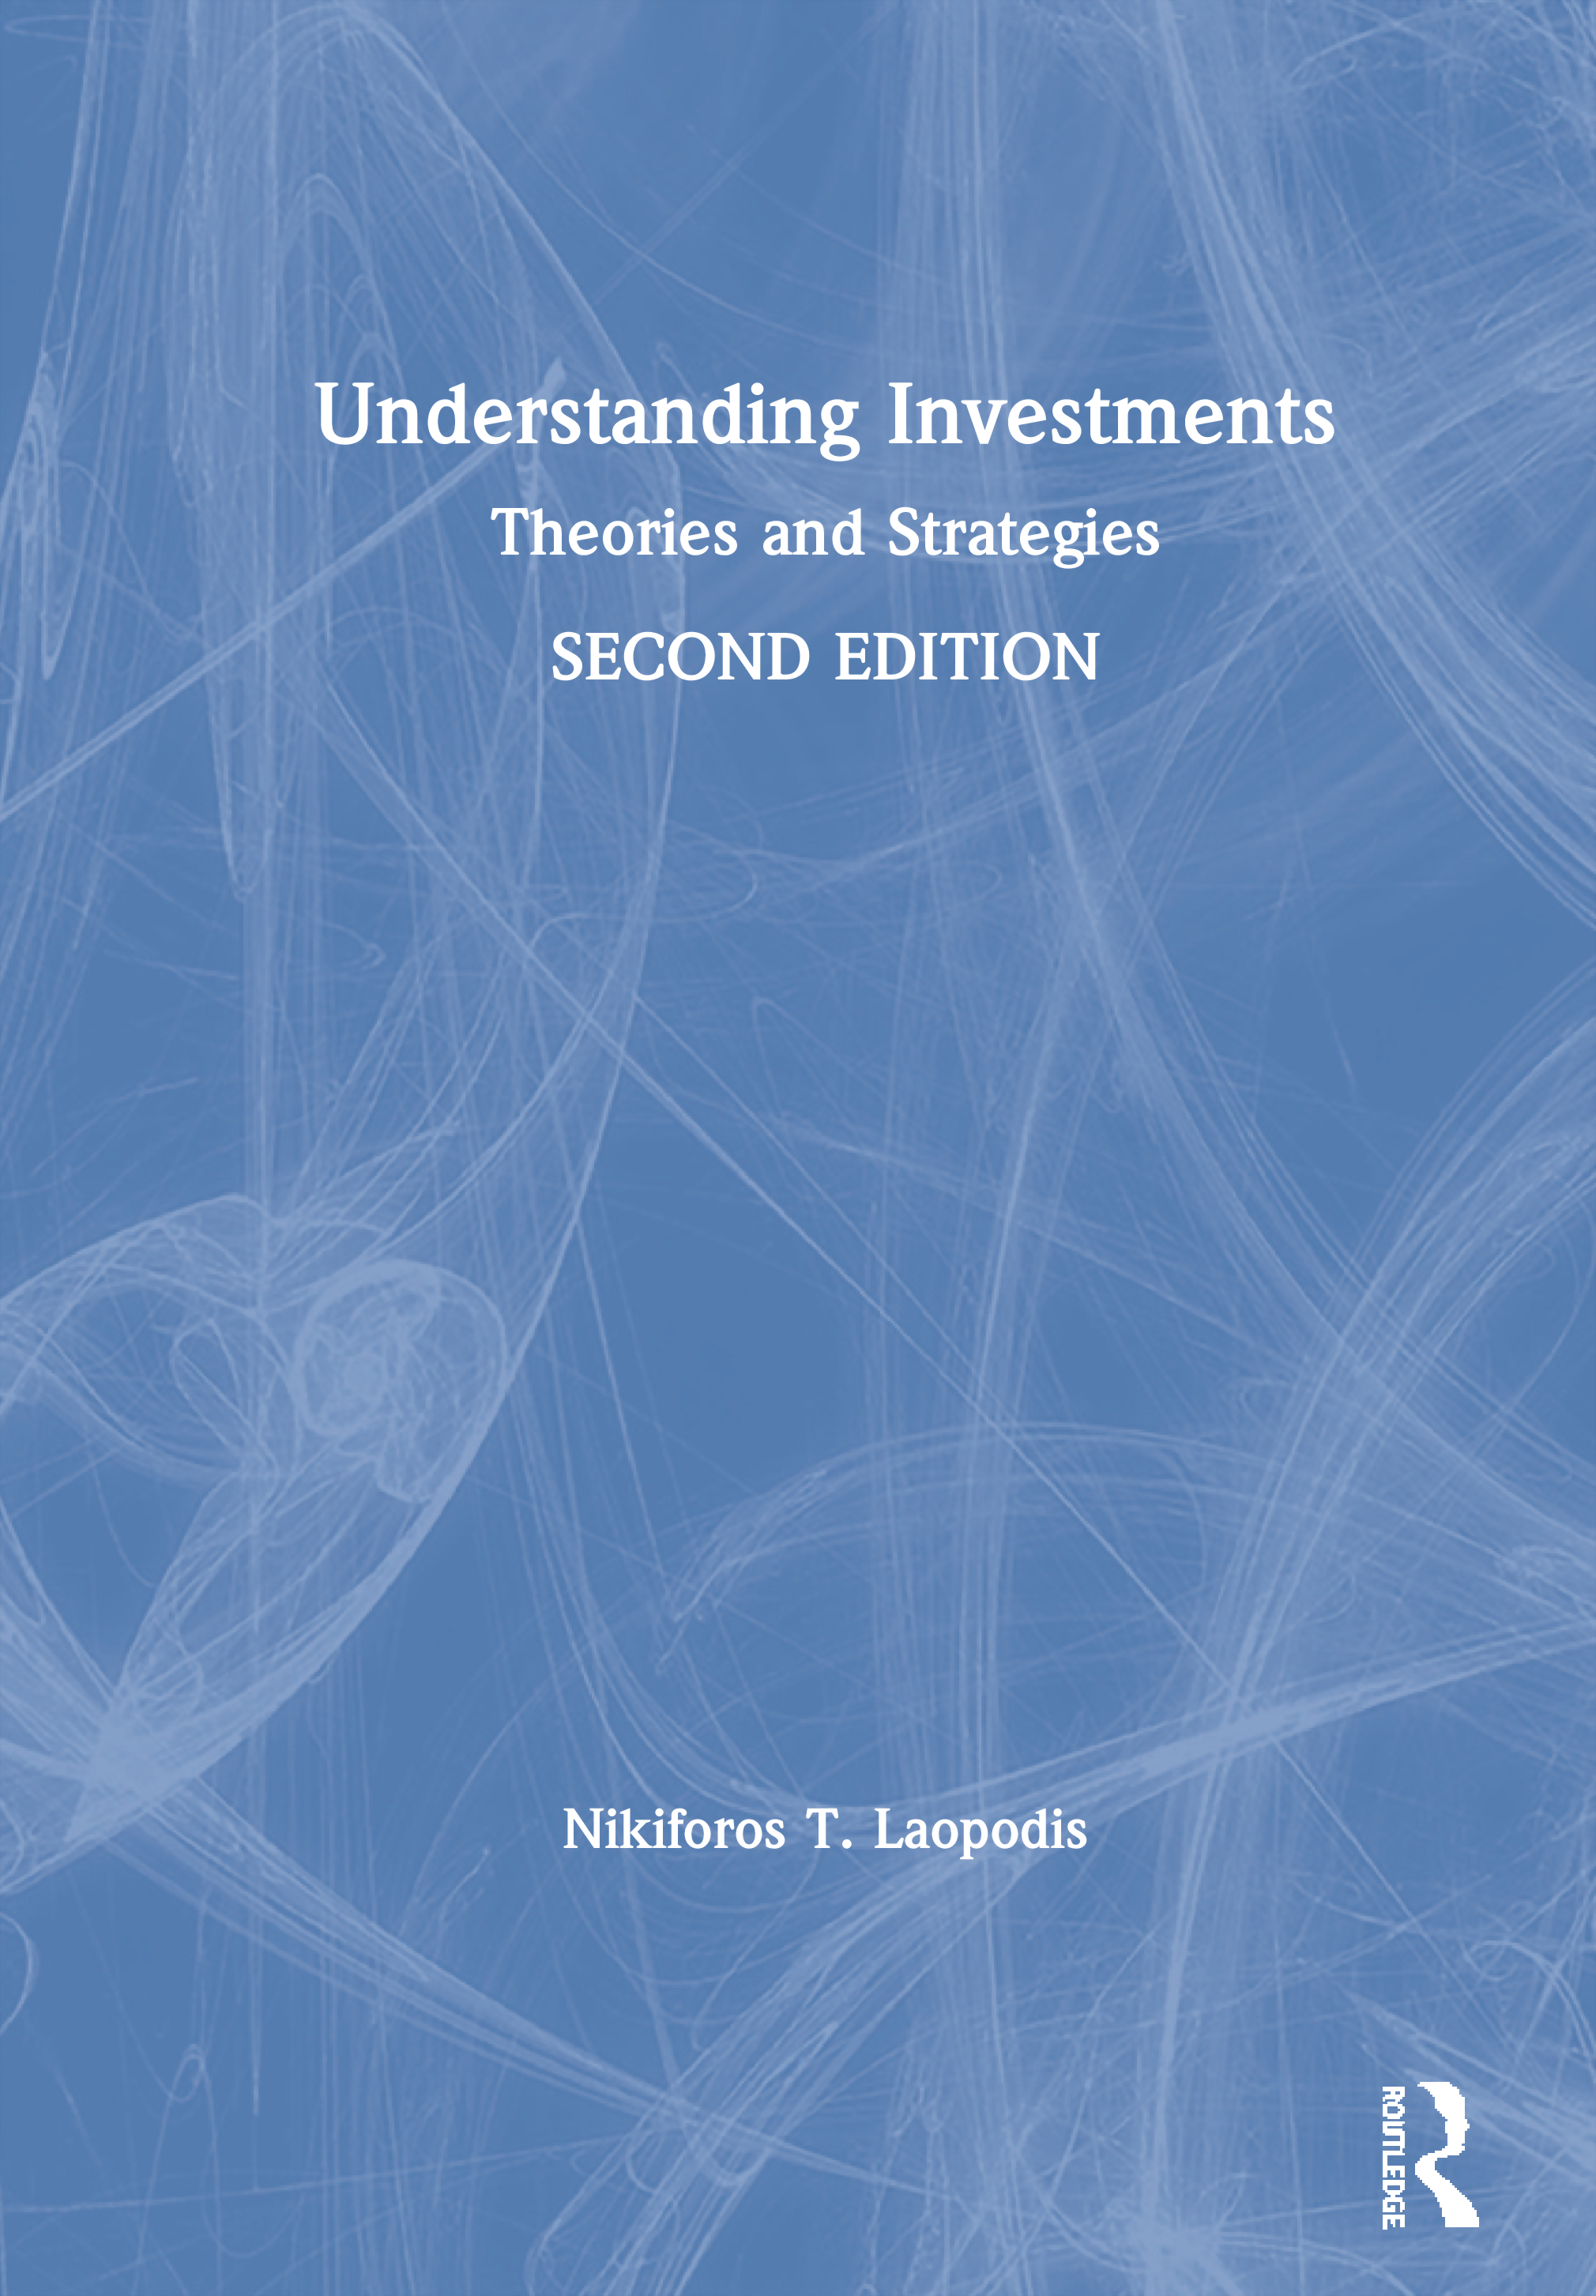 Understanding Investments: Theories and Strategies book cover